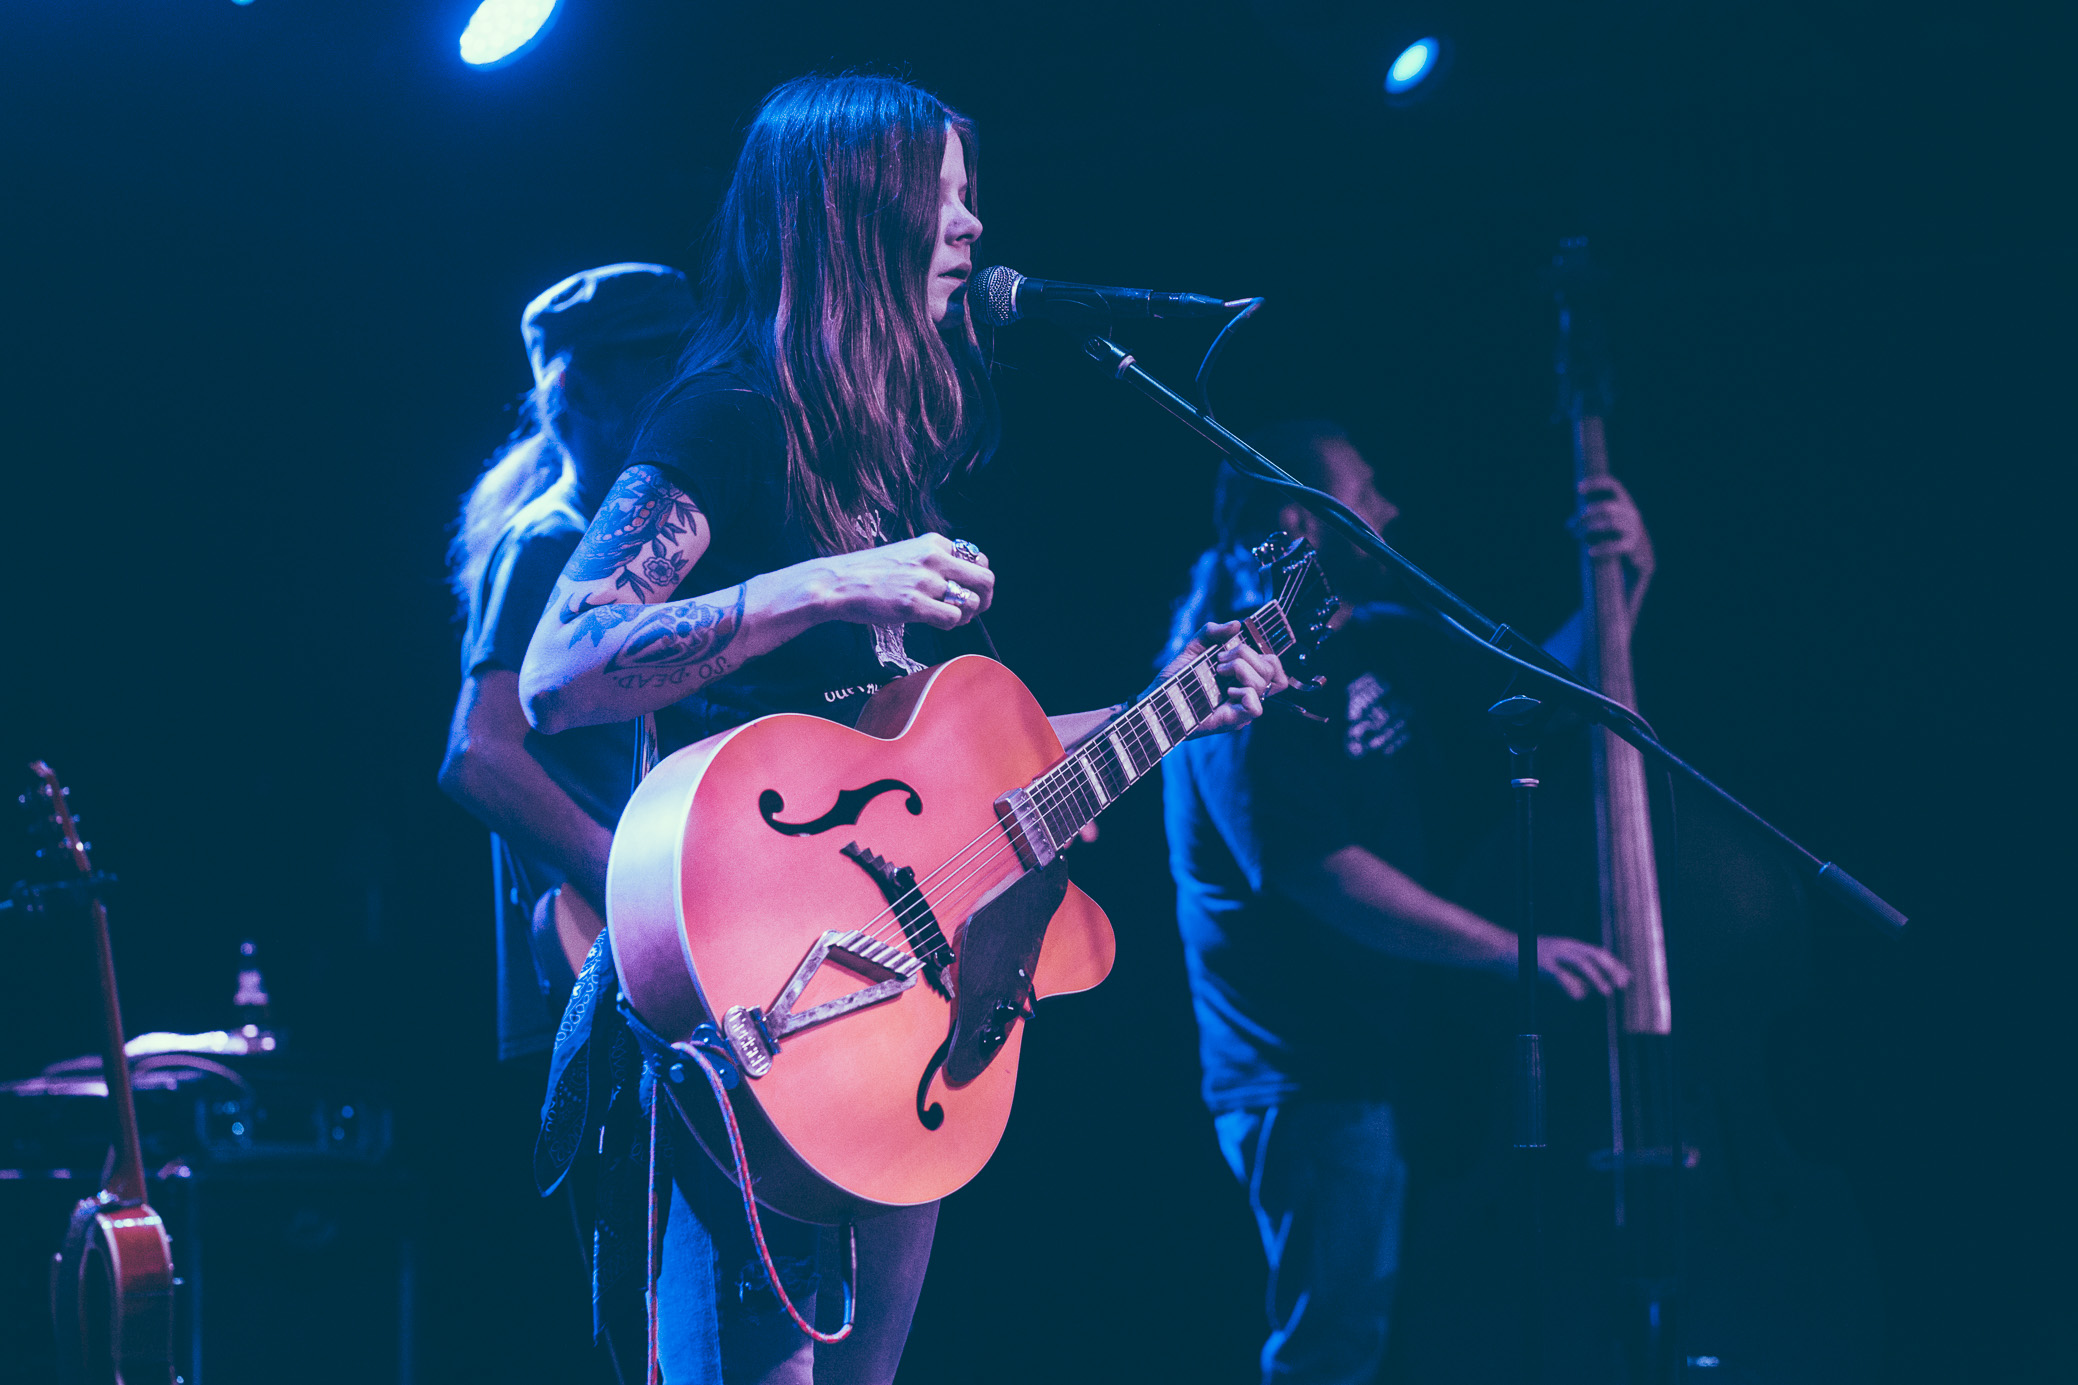 Sarah Shook & the Disarmers perform in concert at Saturn Birmingham in Birmingham, Alabama on June 2nd, 2019. (Photo by David A. Smith / DSmithScenes)